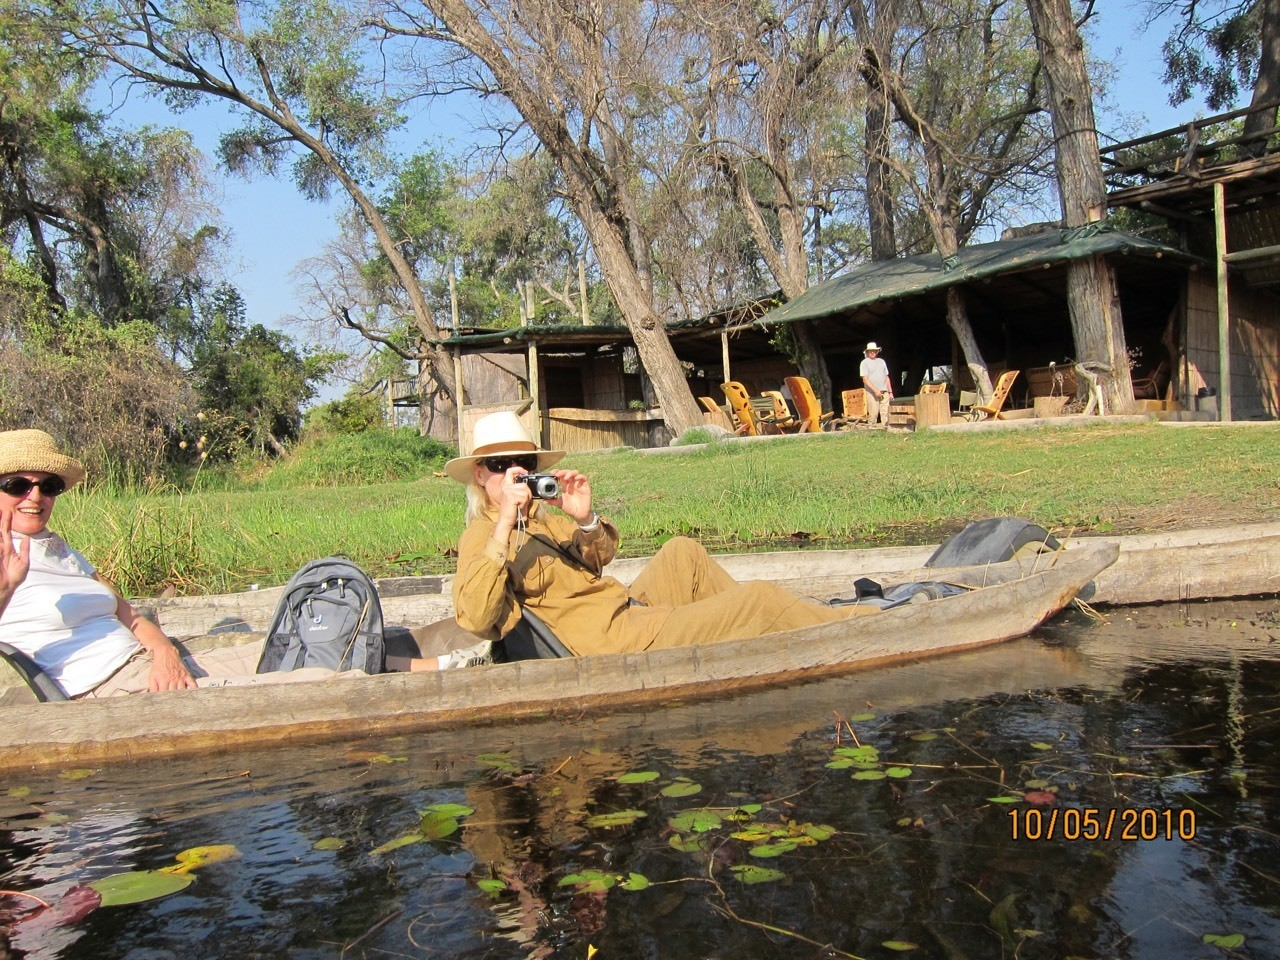 Here we are ready to go off into the bush on our Makoro's (a long canoe that is used to navigate along the Okavango)!